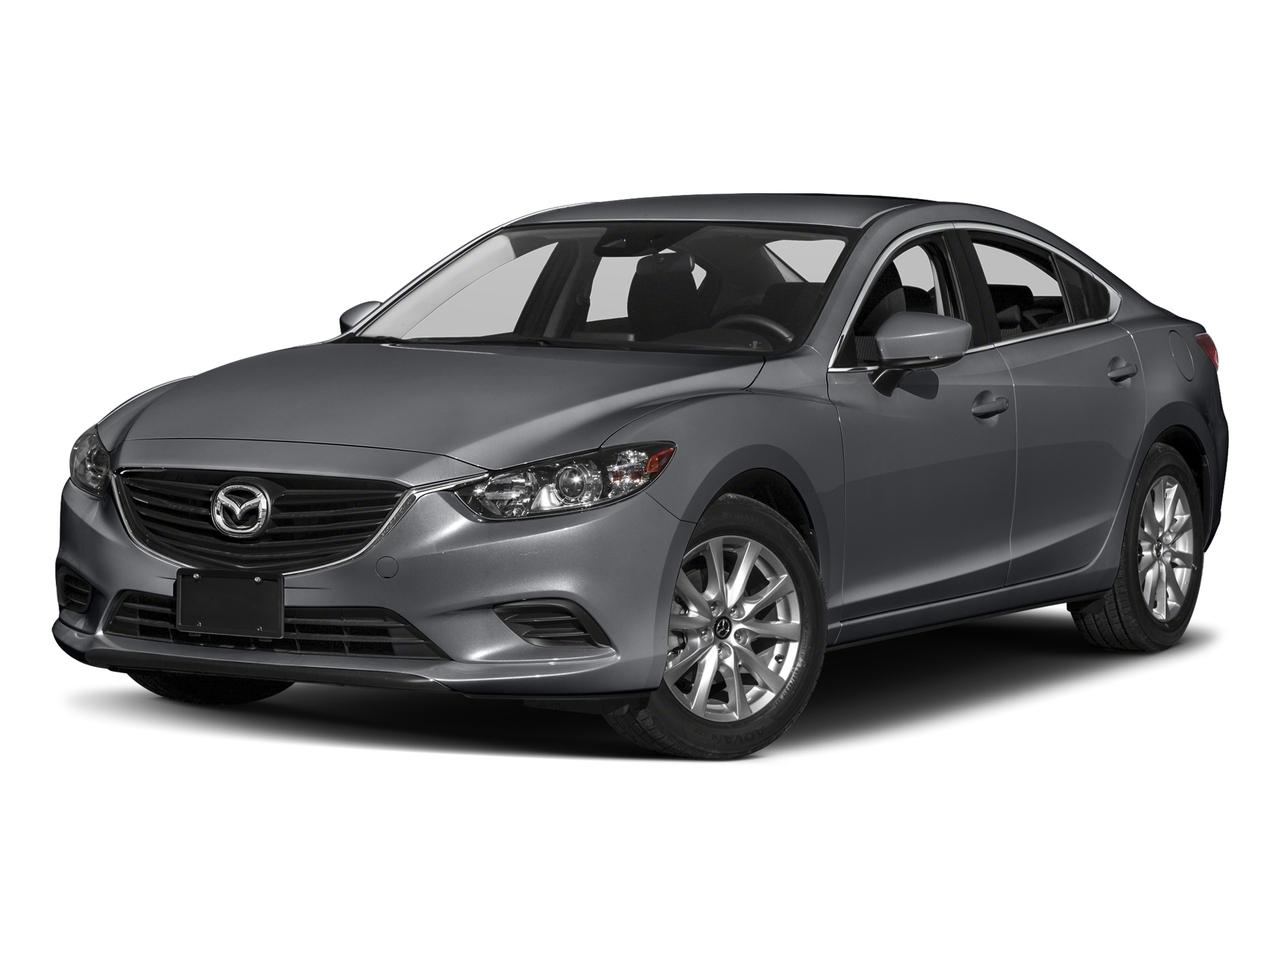 2017 Mazda Mazda6 Vehicle Photo in Trevose, PA 19053